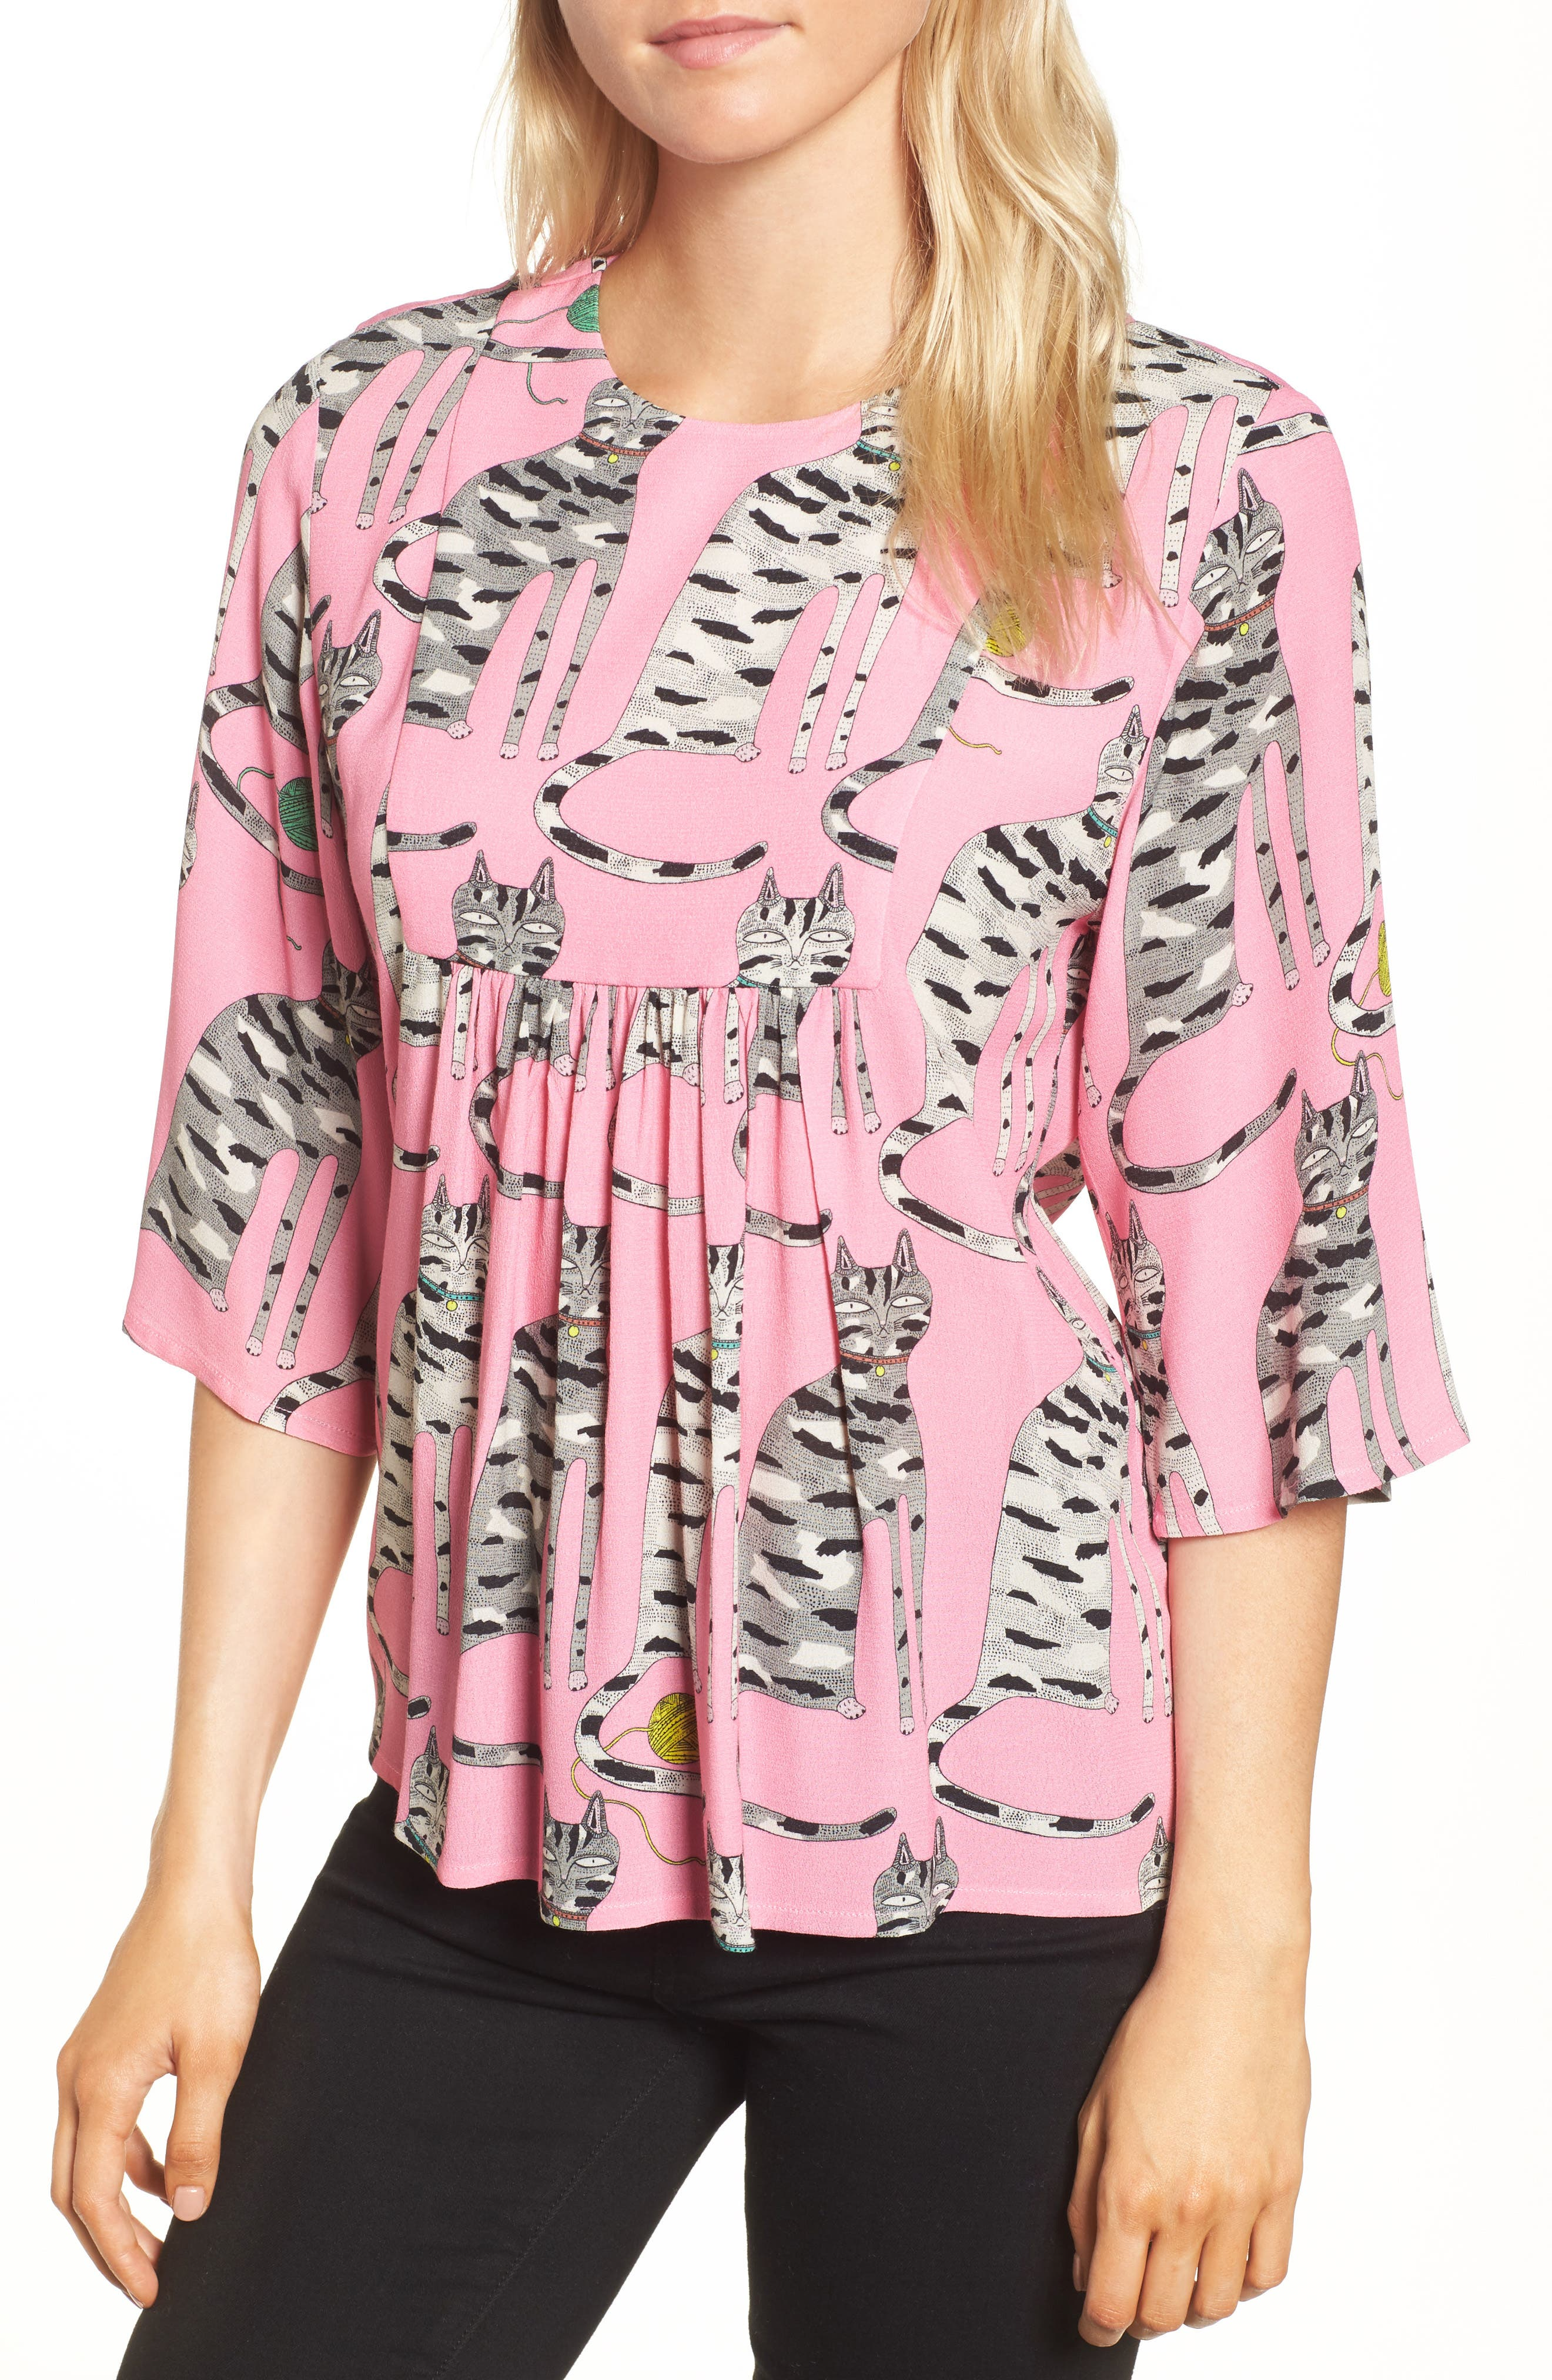 Cat Print Blouse,                             Main thumbnail 1, color,                             651